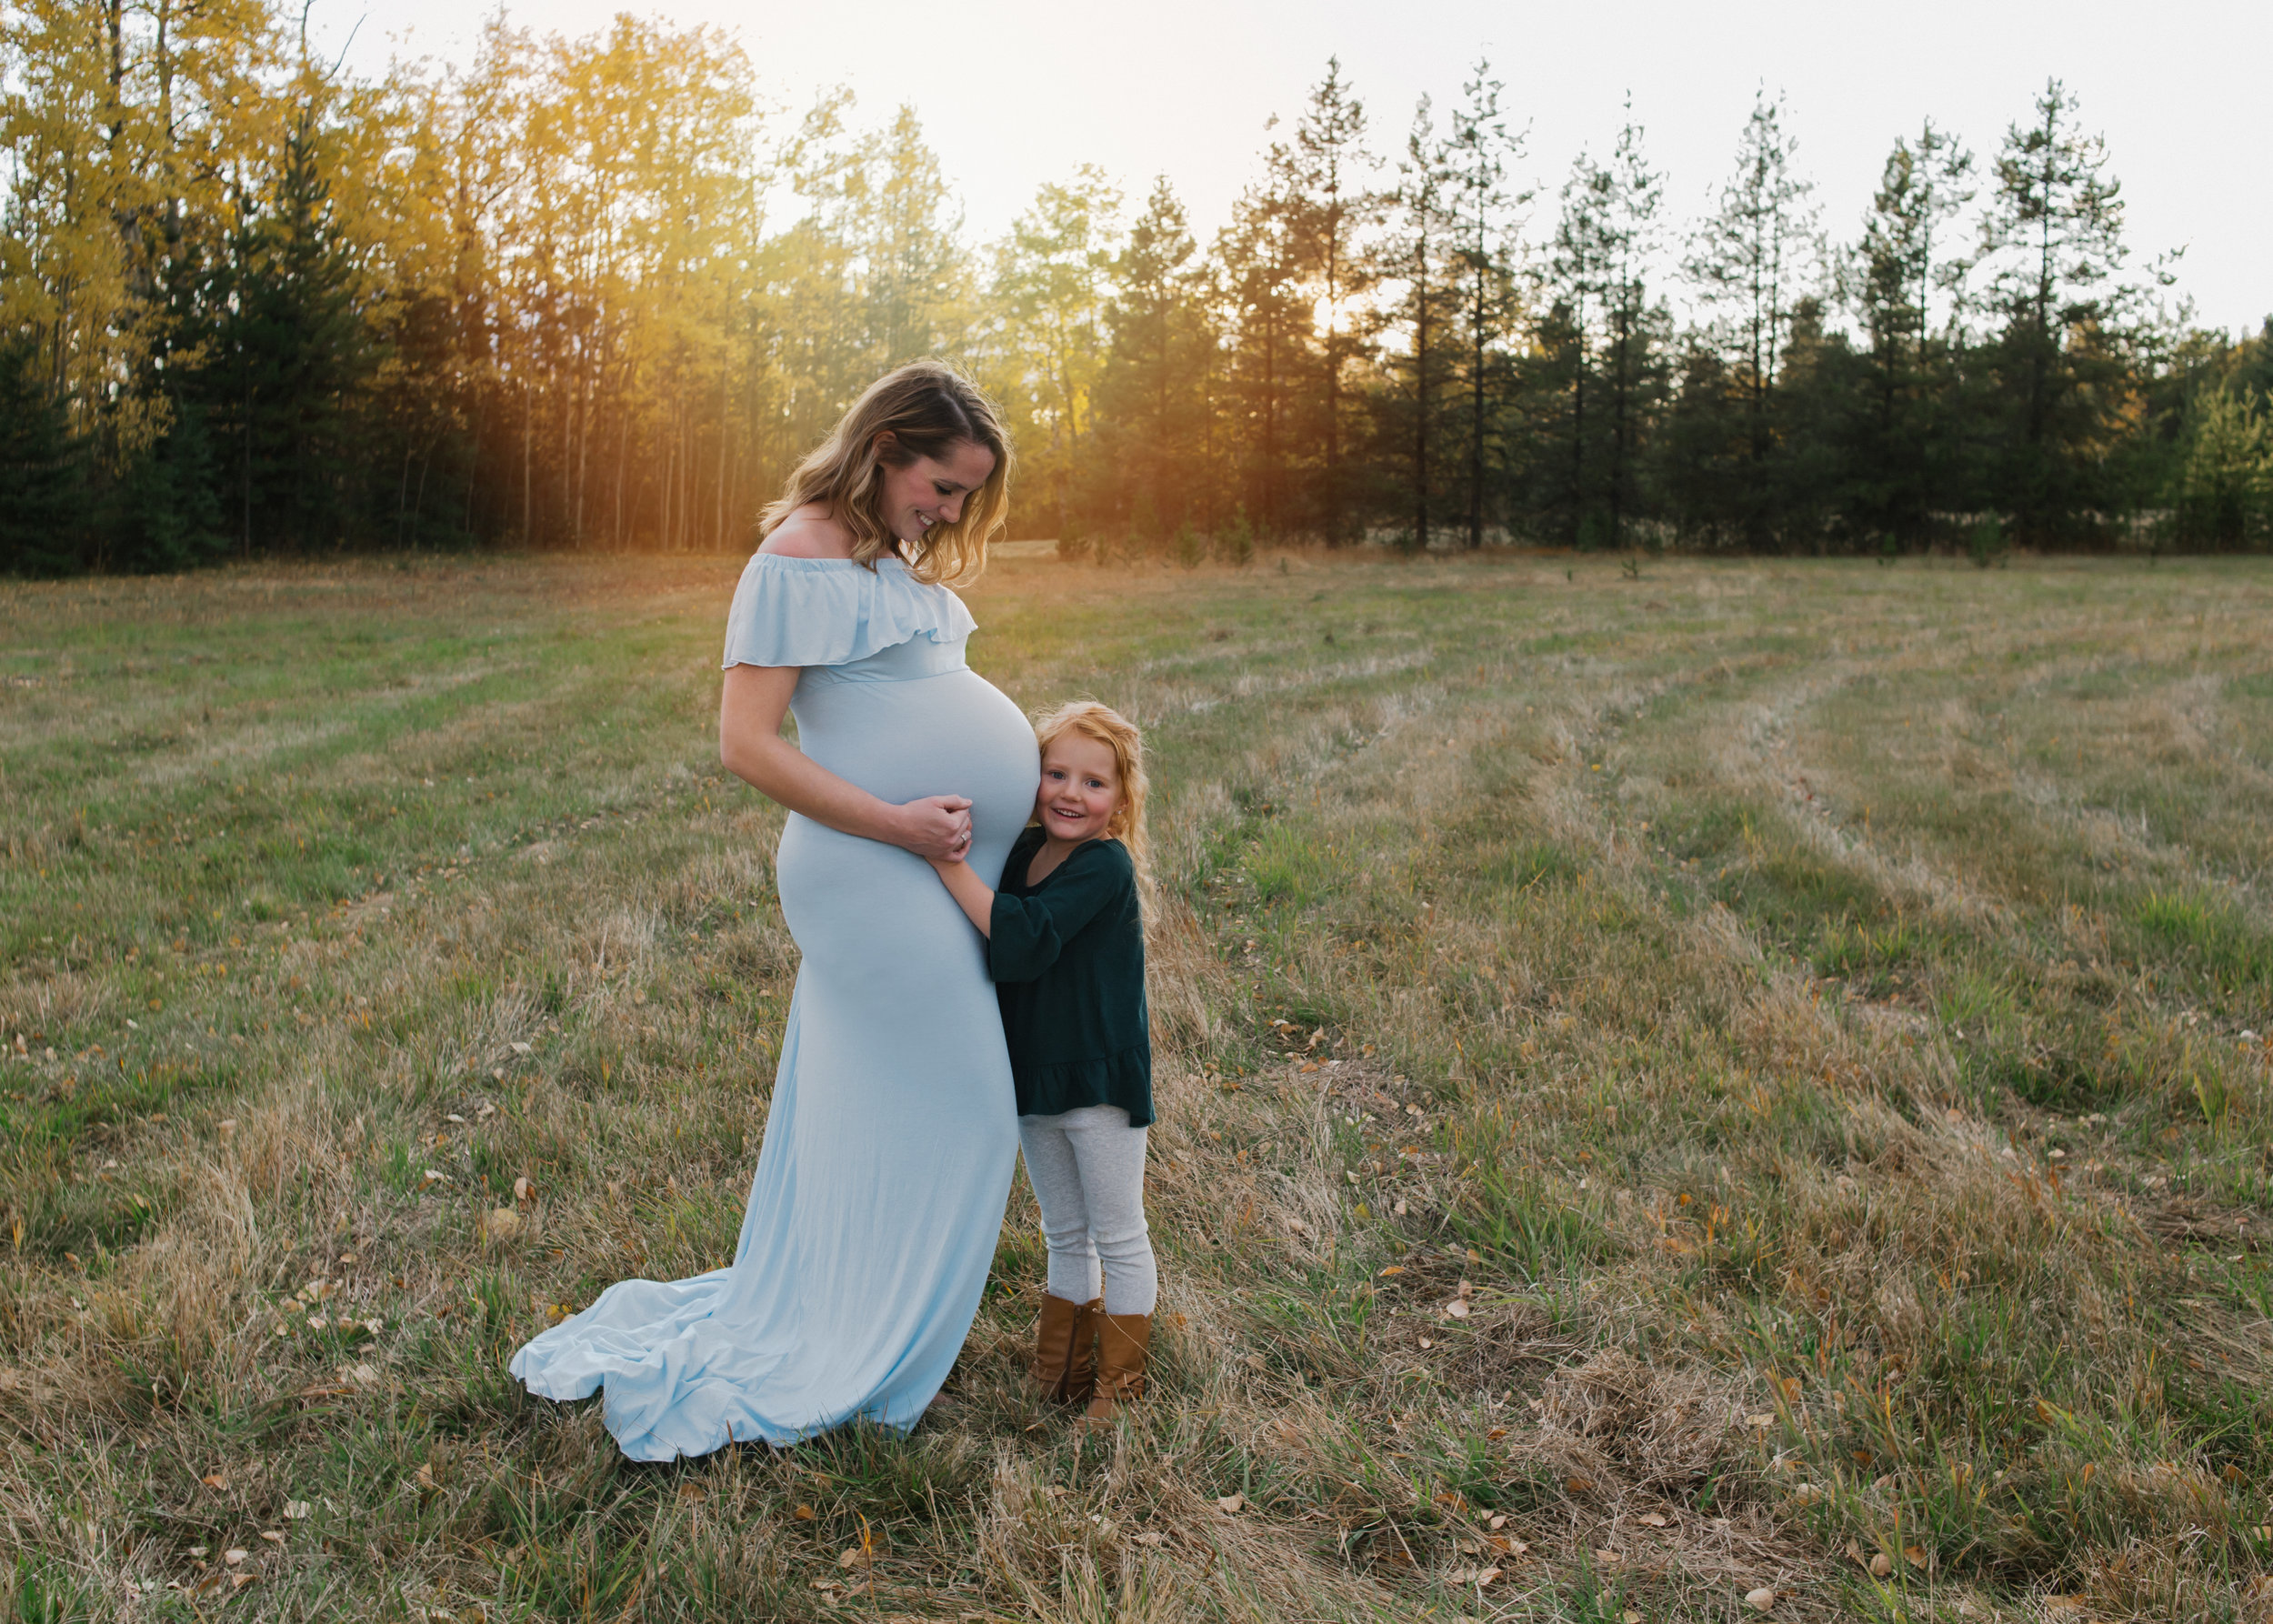 Maternity Session $325 + GST - This session is about one hour. Spouses and siblings are welcome to join in. Fabrics and gowns available to use. 25+ digital images via digital download are included.